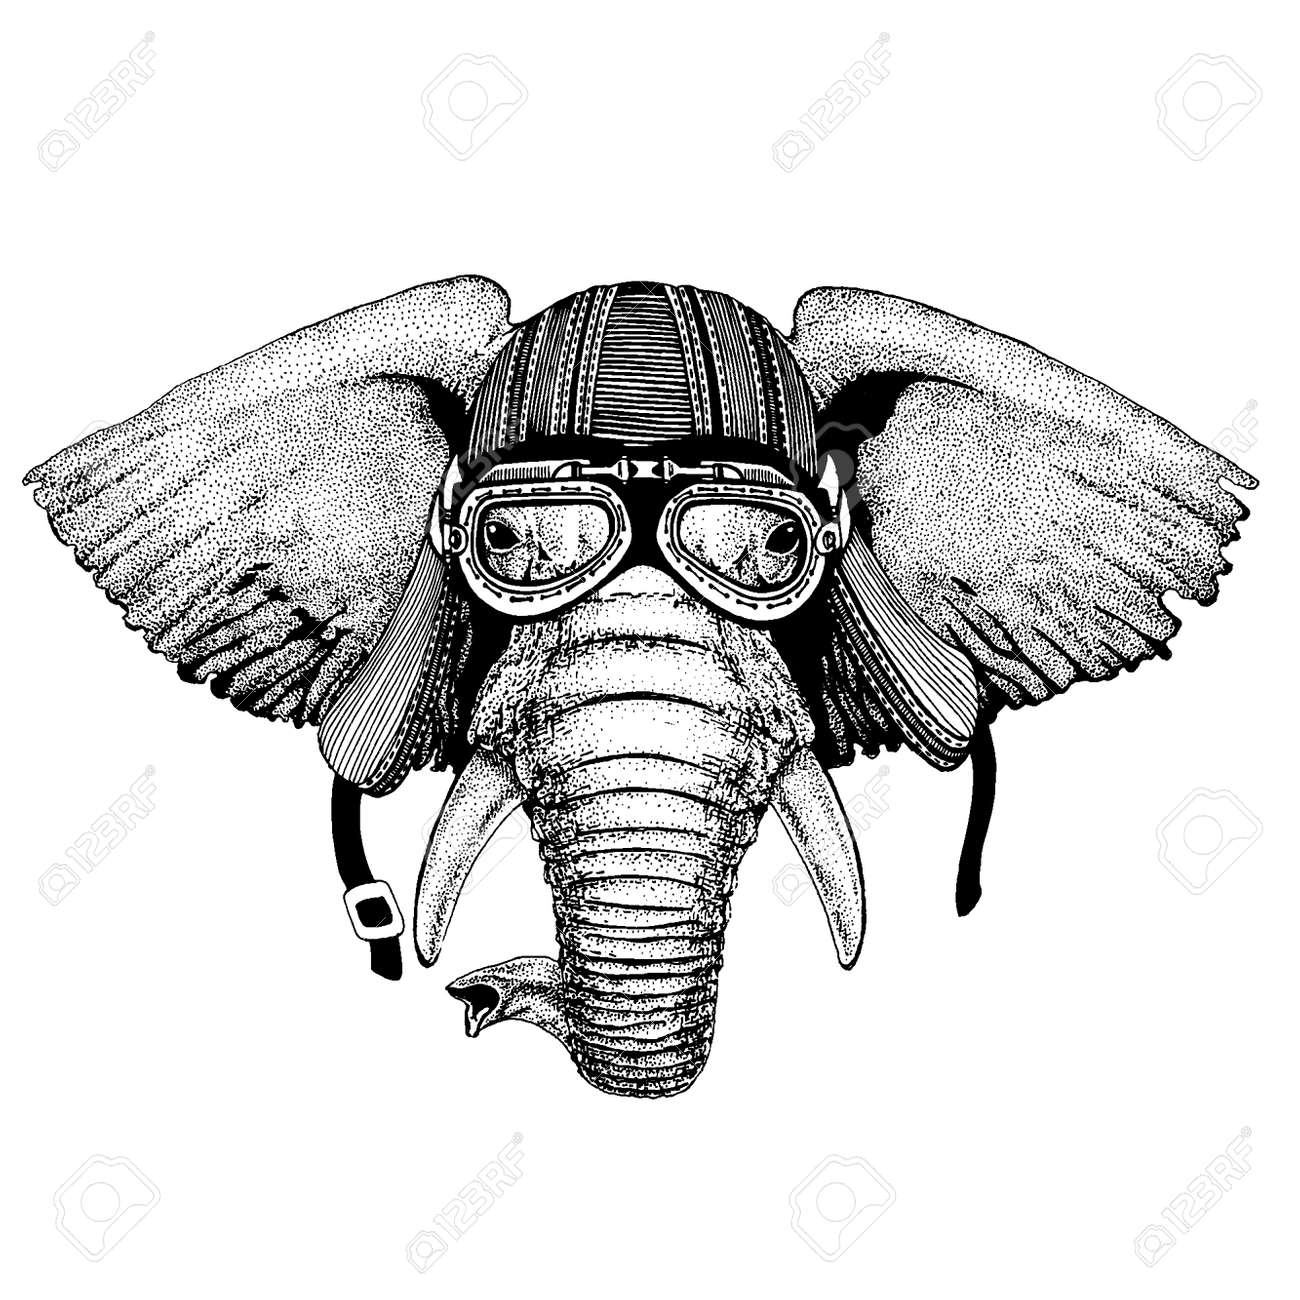 African Or Indian Elephant Wild Biker Animal Wearing Motorcycle Royalty Free Cliparts Vectors And Stock Illustration Image 120708440